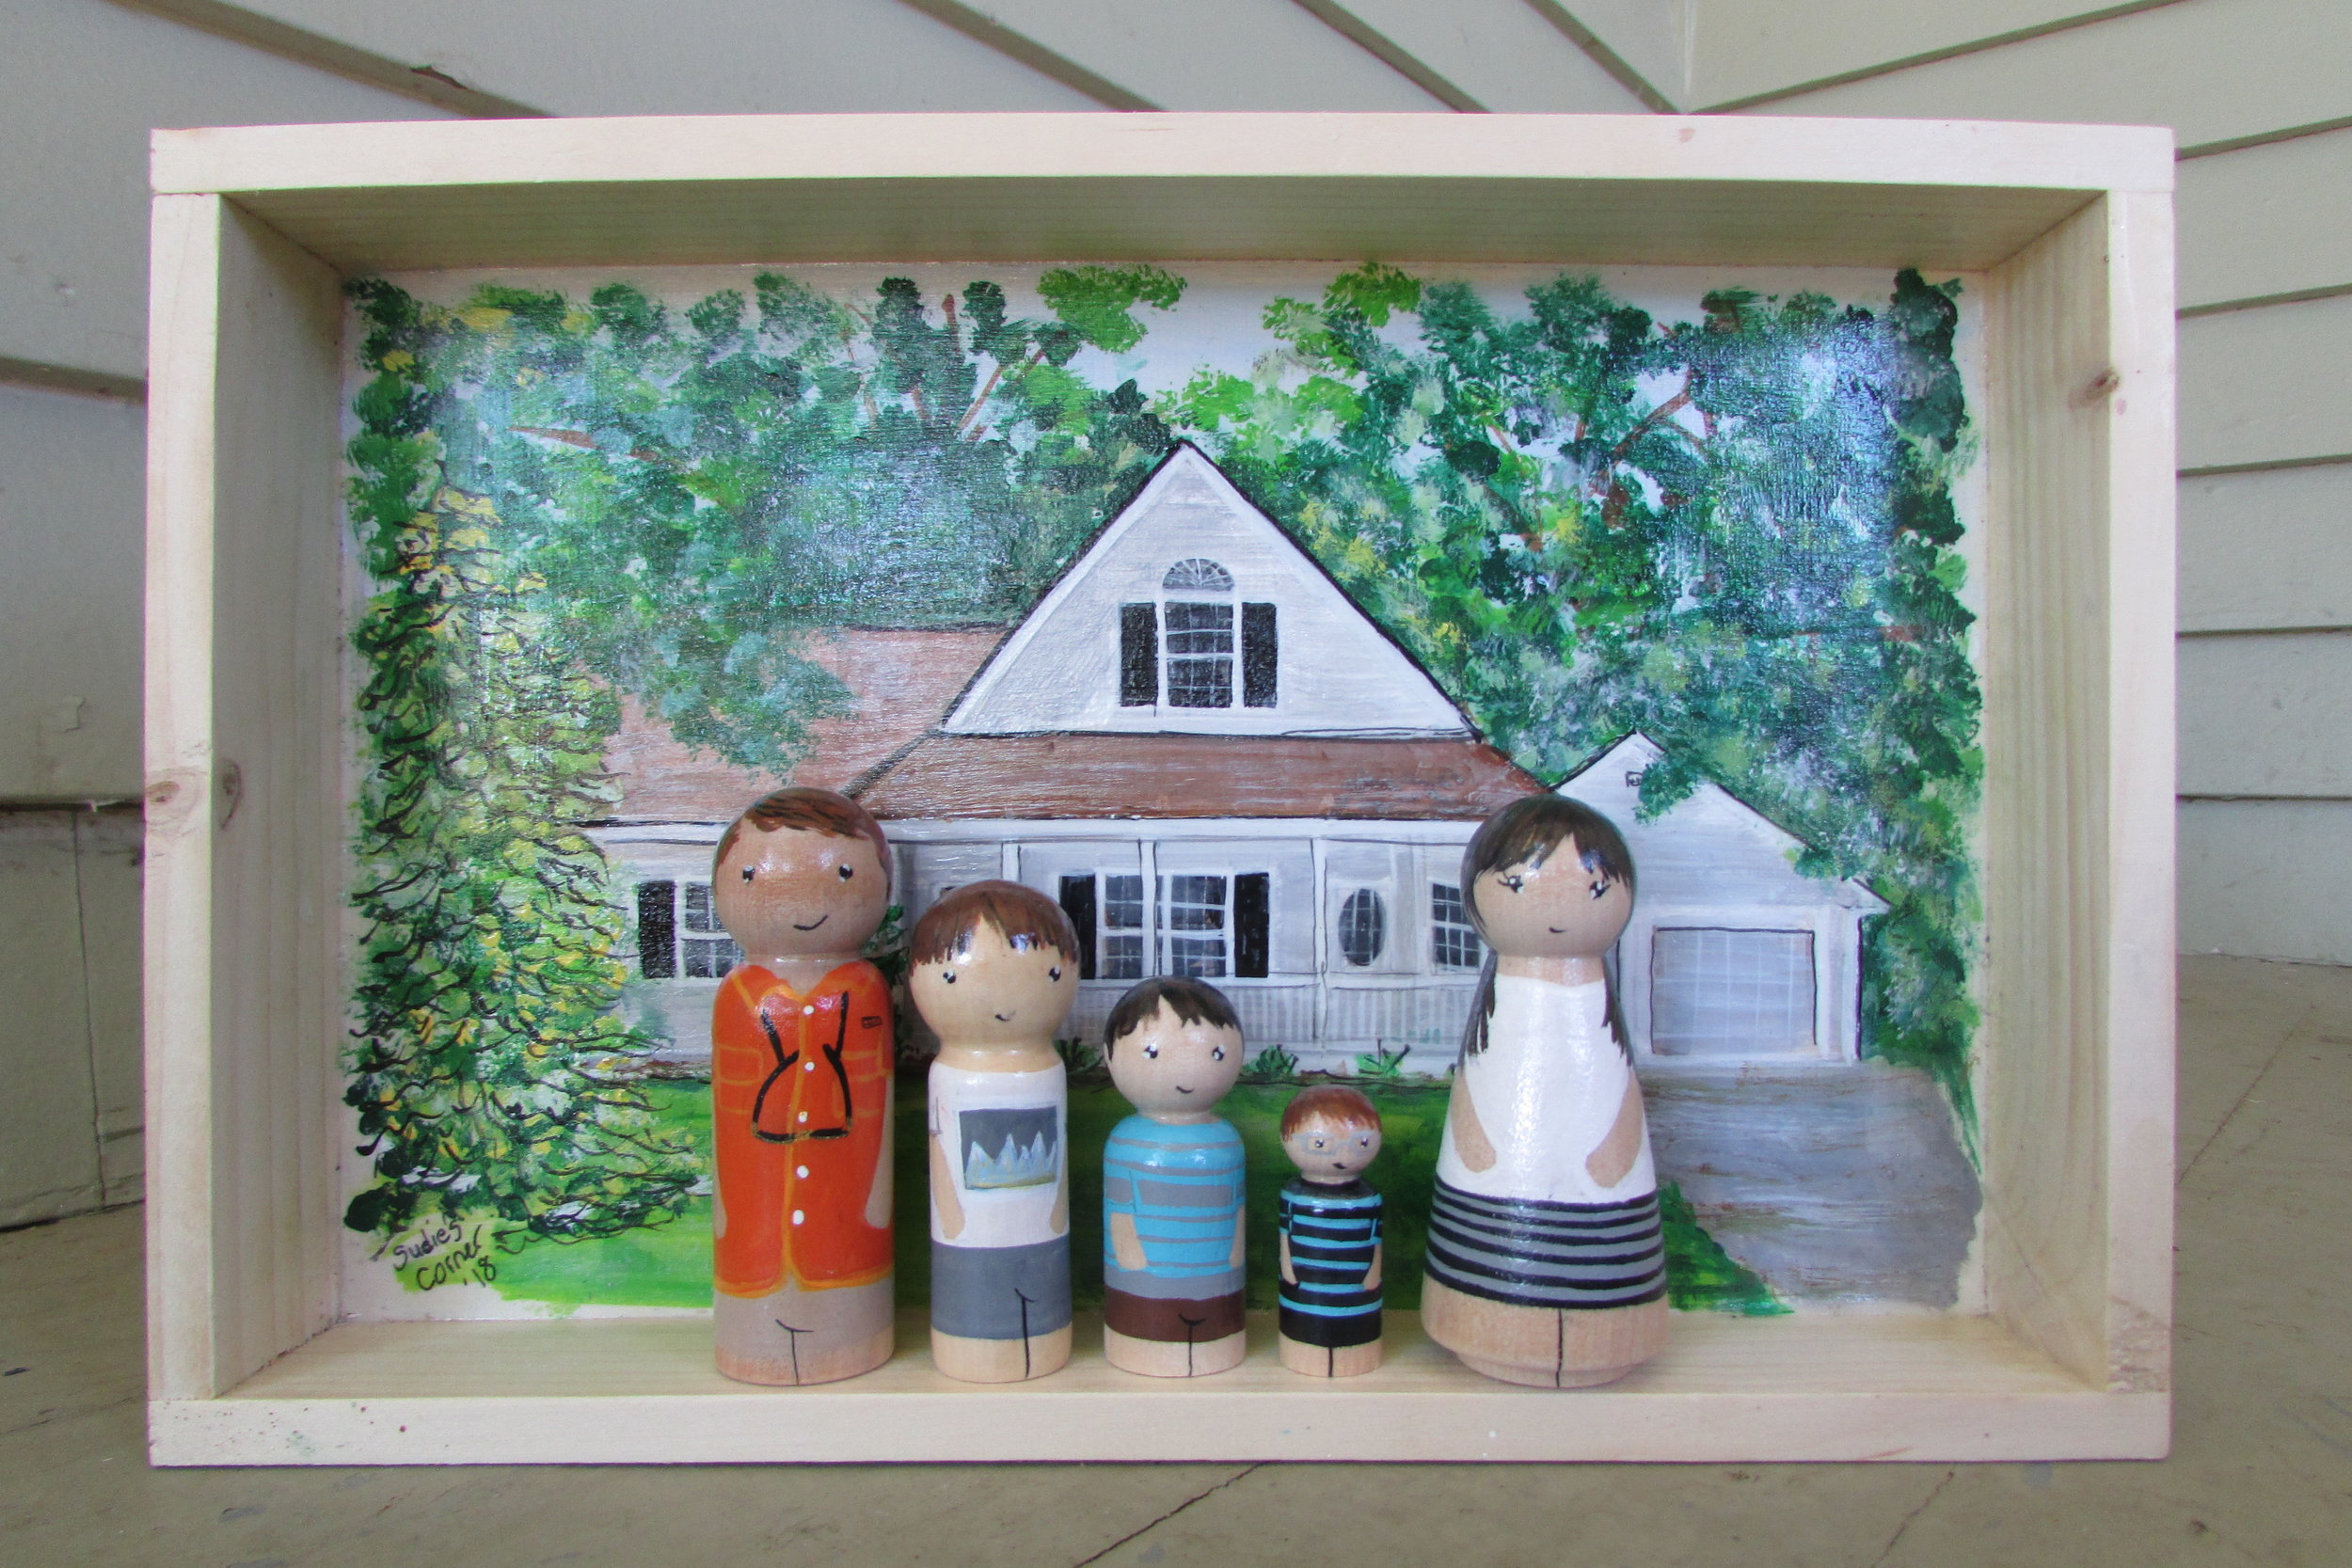 House Warming Gift - This Shadow Box is a sweet house warming gift for this little family as they start a new adventure in a new town and a new house. A promise of many memories to be made in this beautiful home.Box Size 8x12 inches. 5 peg dolls. Starts at $150